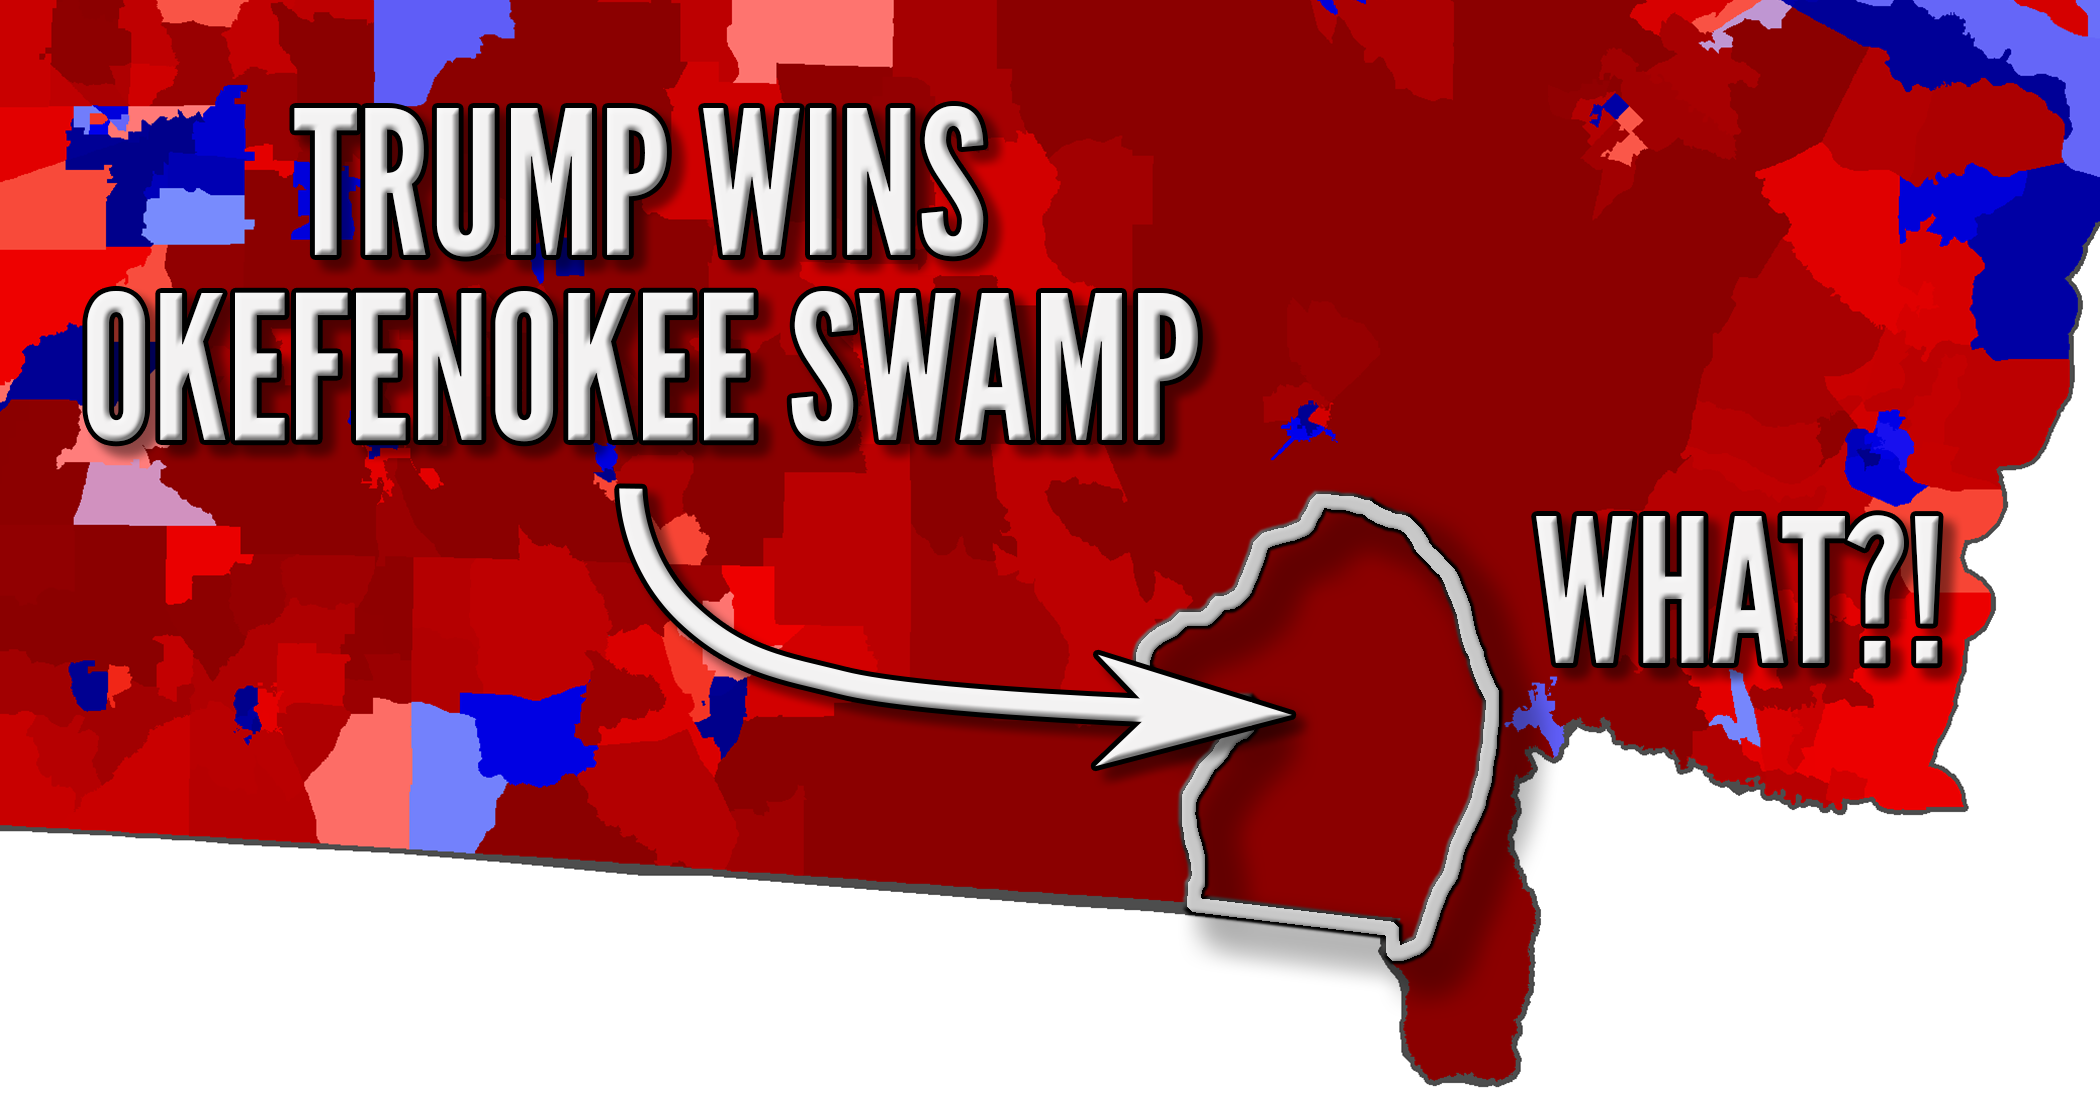 The problem with color-coded (choropleth) election maps is that Trump won the Okefenokee Swamp, population alligators.